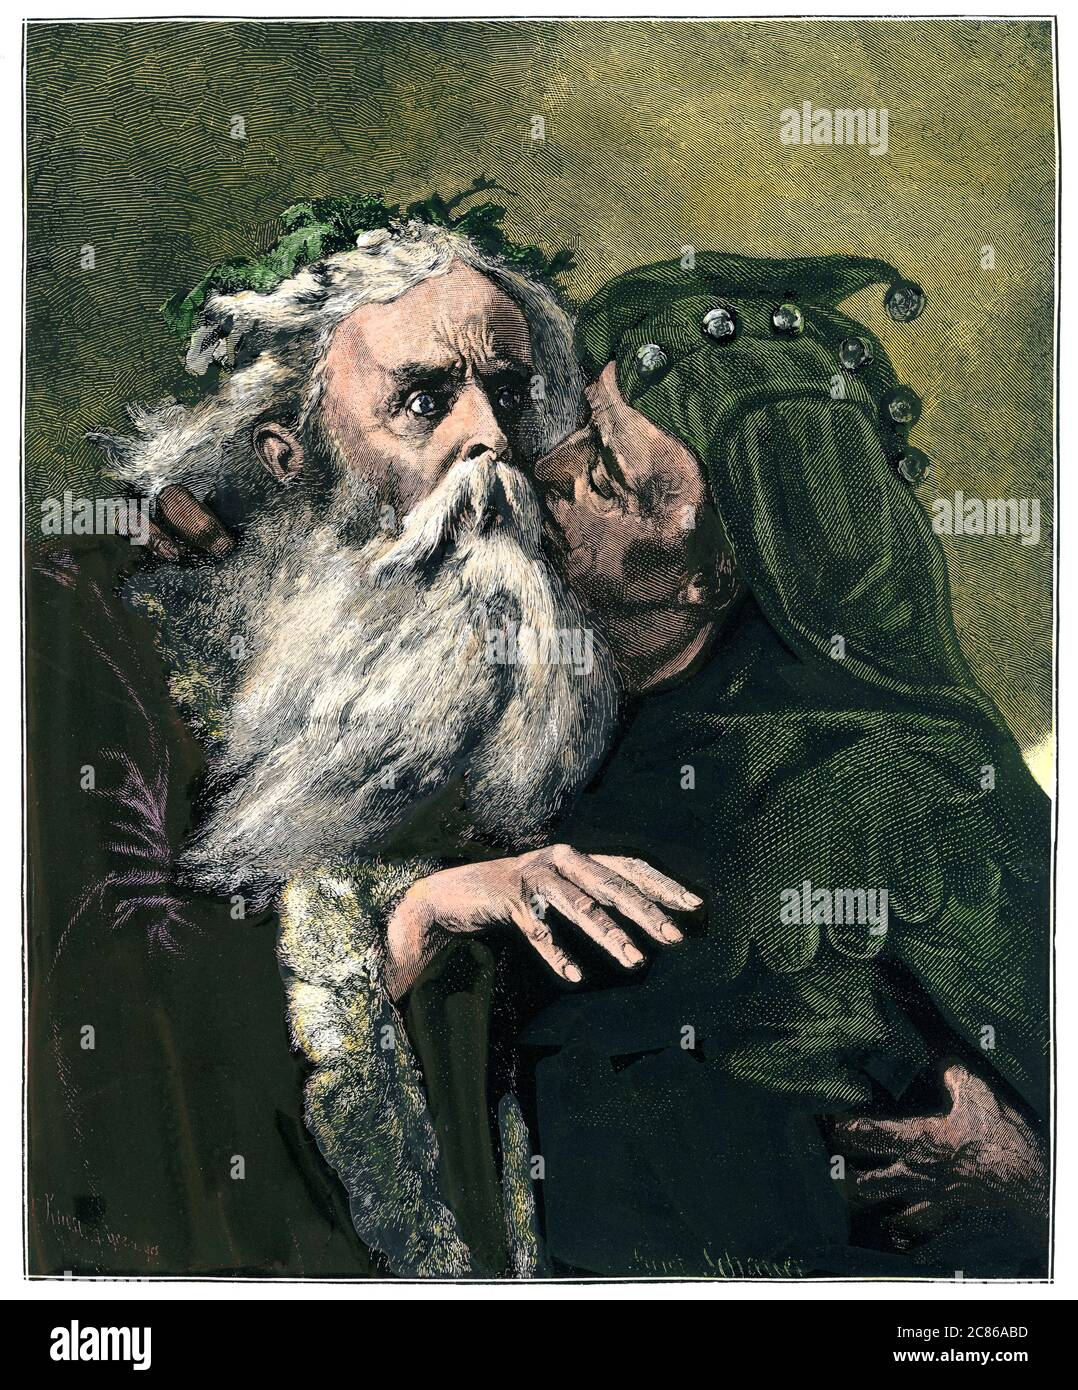 Shakespearean scene of King Lear and the Fool.Hand-colored woodcut Stock Photo